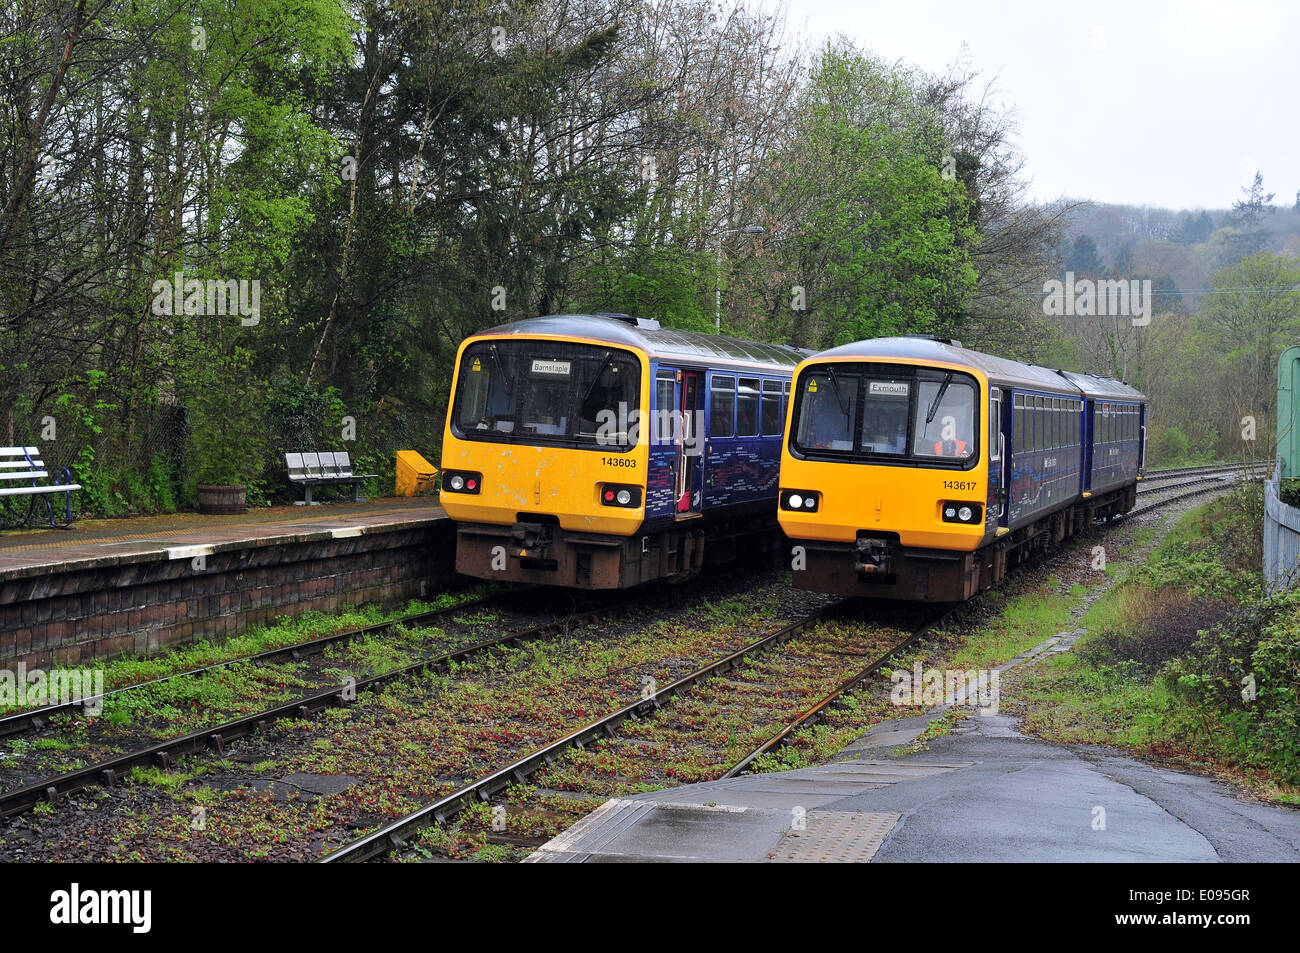 Two First Great Western Class 143 DMU trains pass each other at Eggesford station, Devon, England between Exeter and Barnstaple - Stock Image